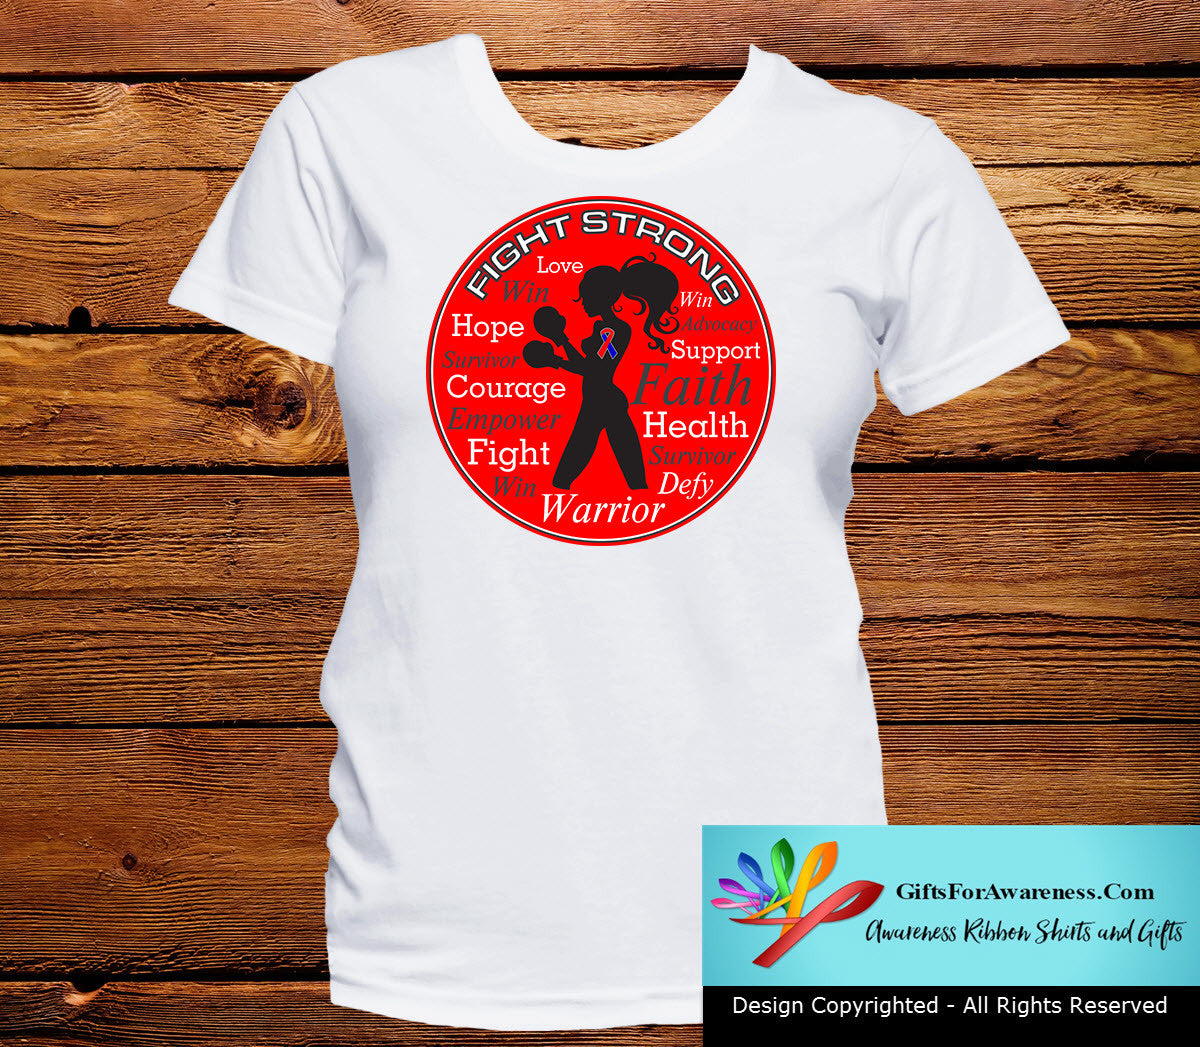 Congenital Heart Defects Fight Strong Motto T-Shirts - GiftsForAwareness